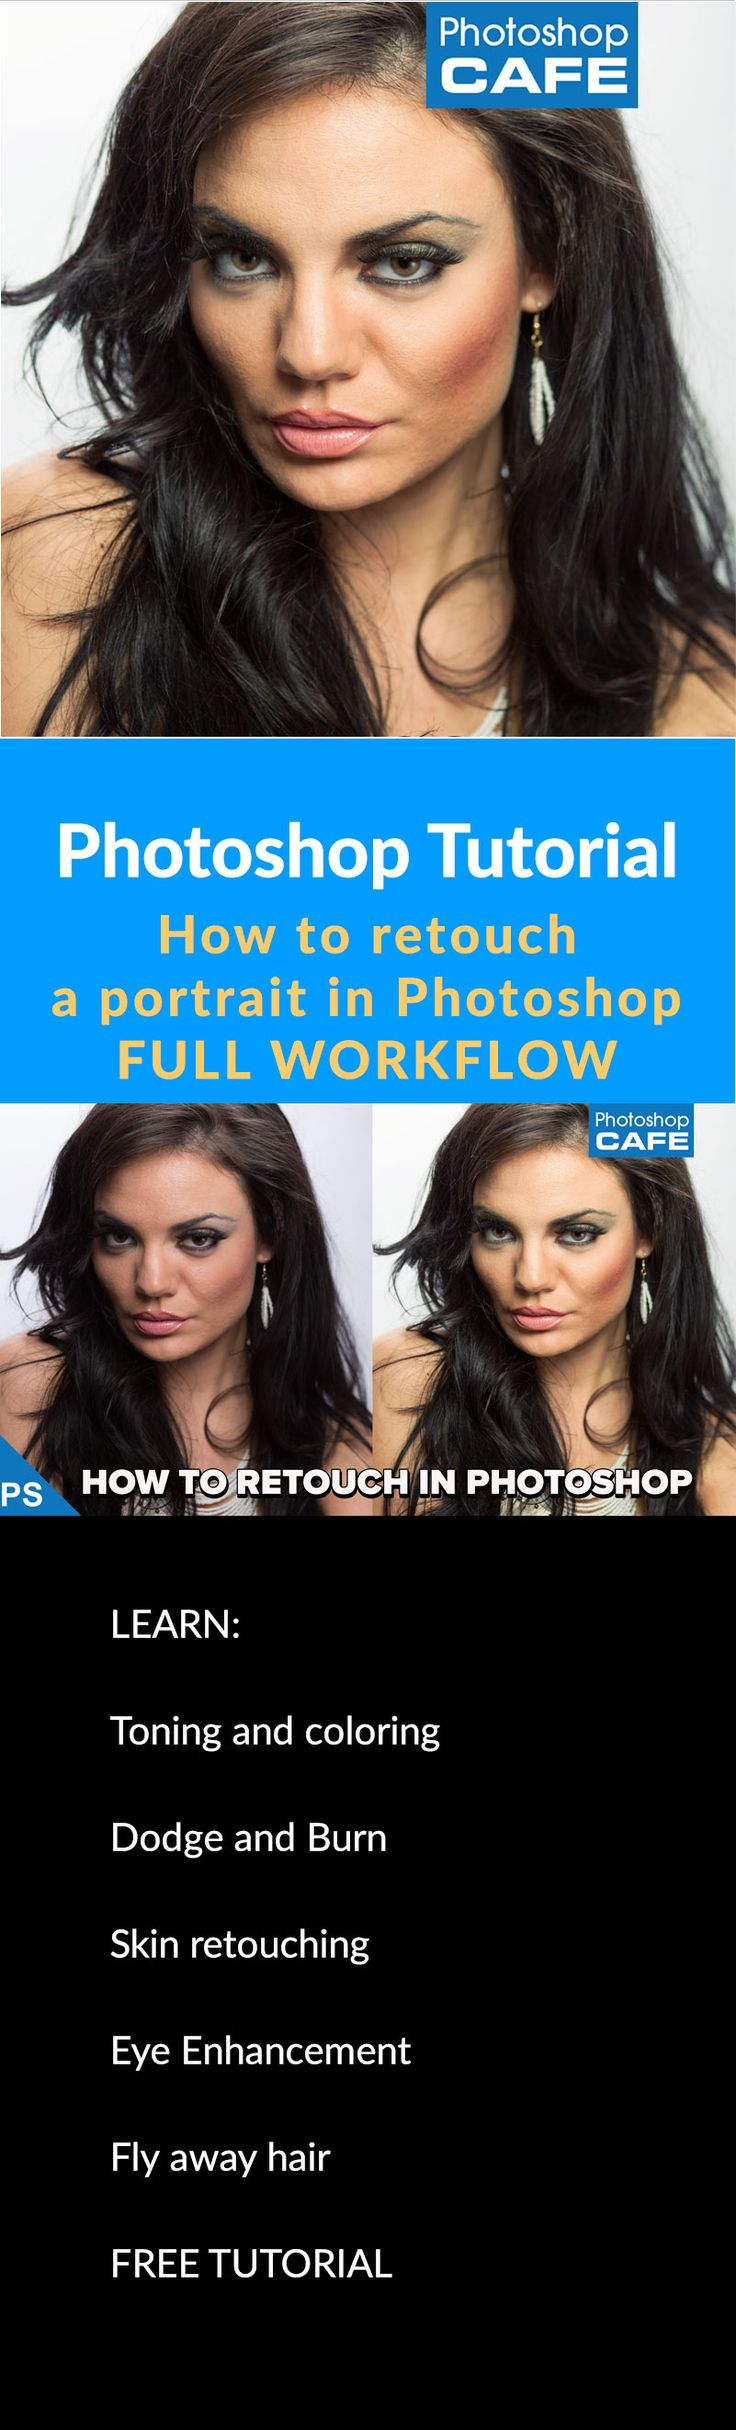 How to retouch a face in Photoshop. Learn how to retouch skin, enhance eye and do contouring to define the shape of the face. Learn the entire portrait photography retouching workflow for free here. http://photoshopcafe.com/tutorials/how-to-retouch-a-face-in-photoshop-workflow-tutorial/